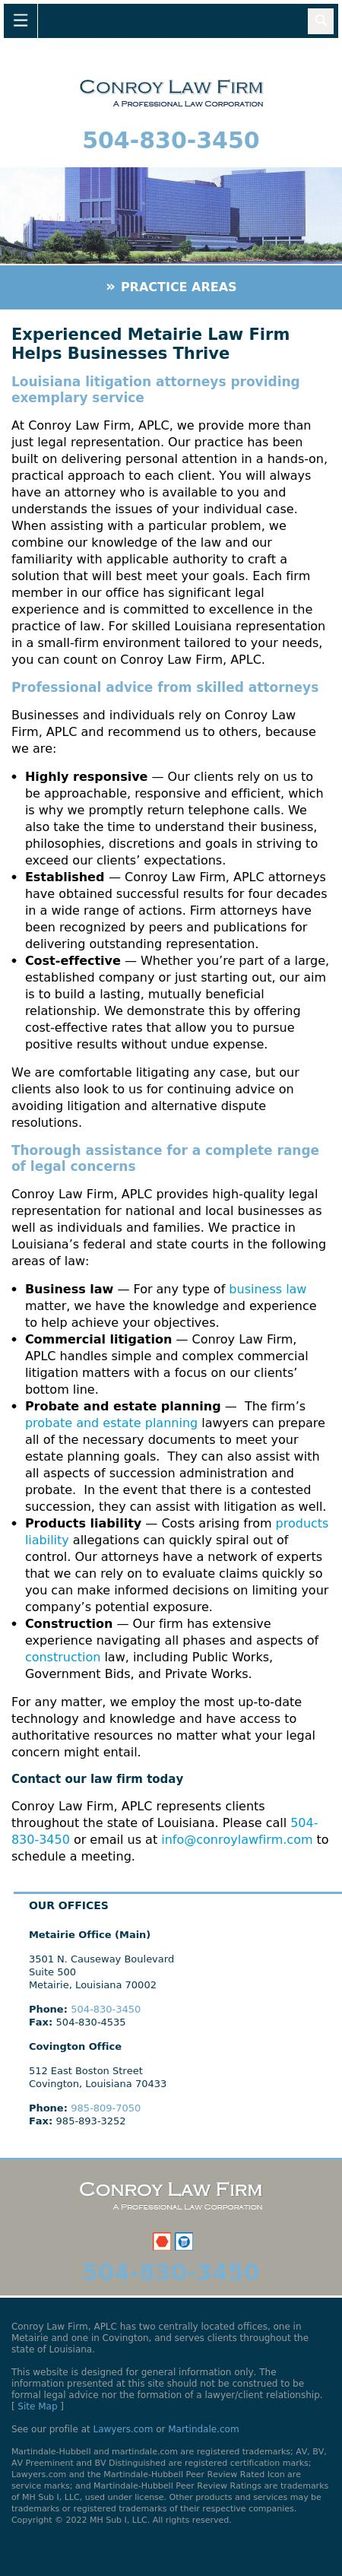 Conroy Law Firm - Covington LA Lawyers